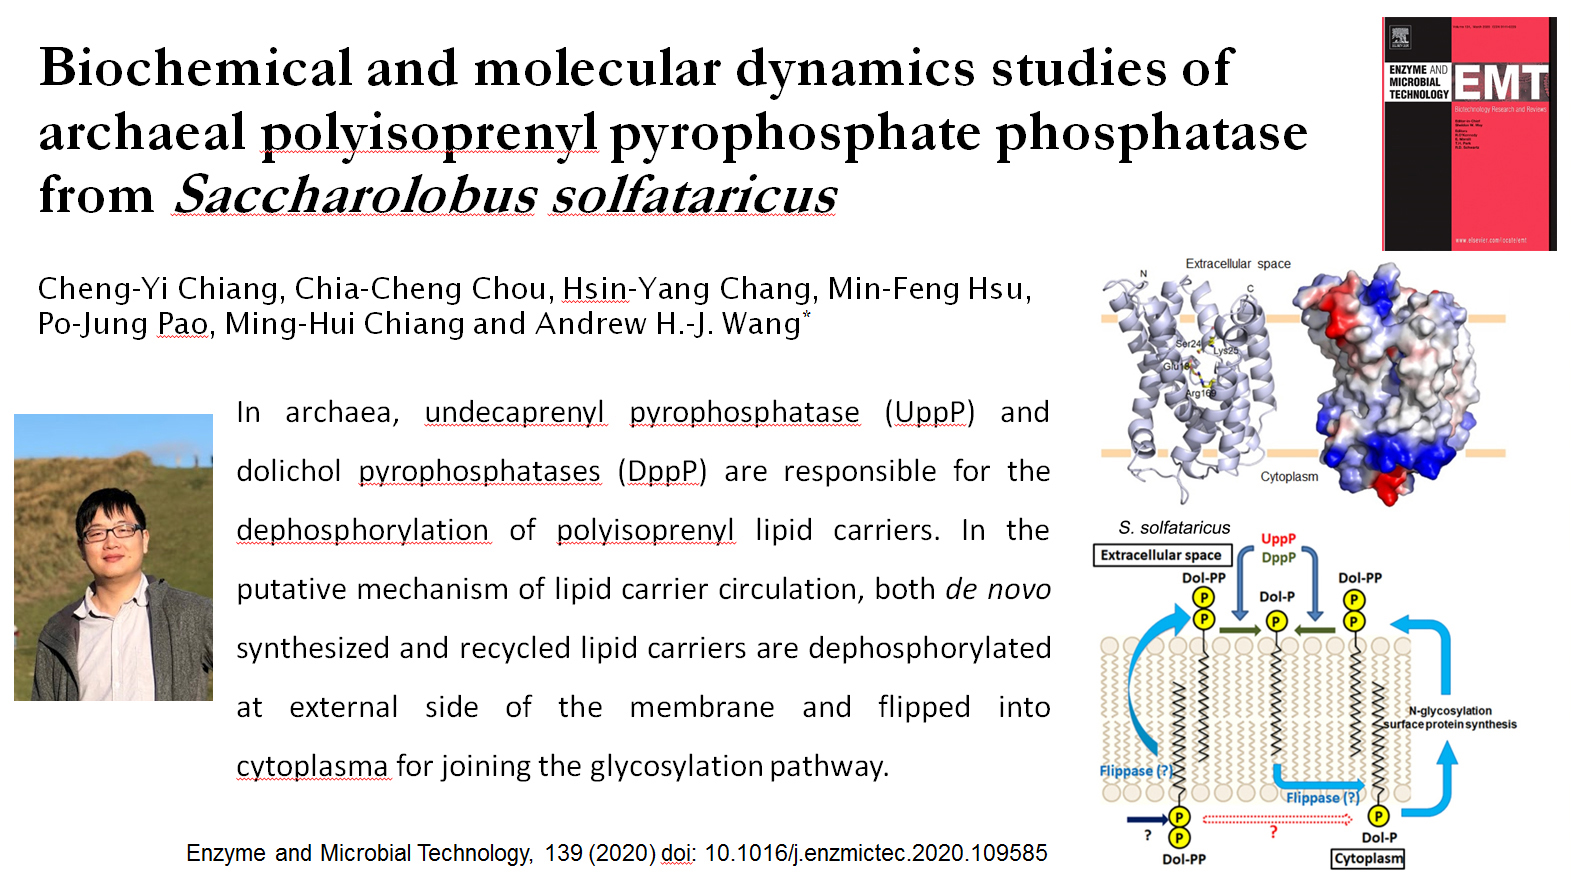 Biochemical and molecular dynamics studies of archaeal polyisoprenyl pyrophosphate phosphatase from Saccharolobus solfataricus